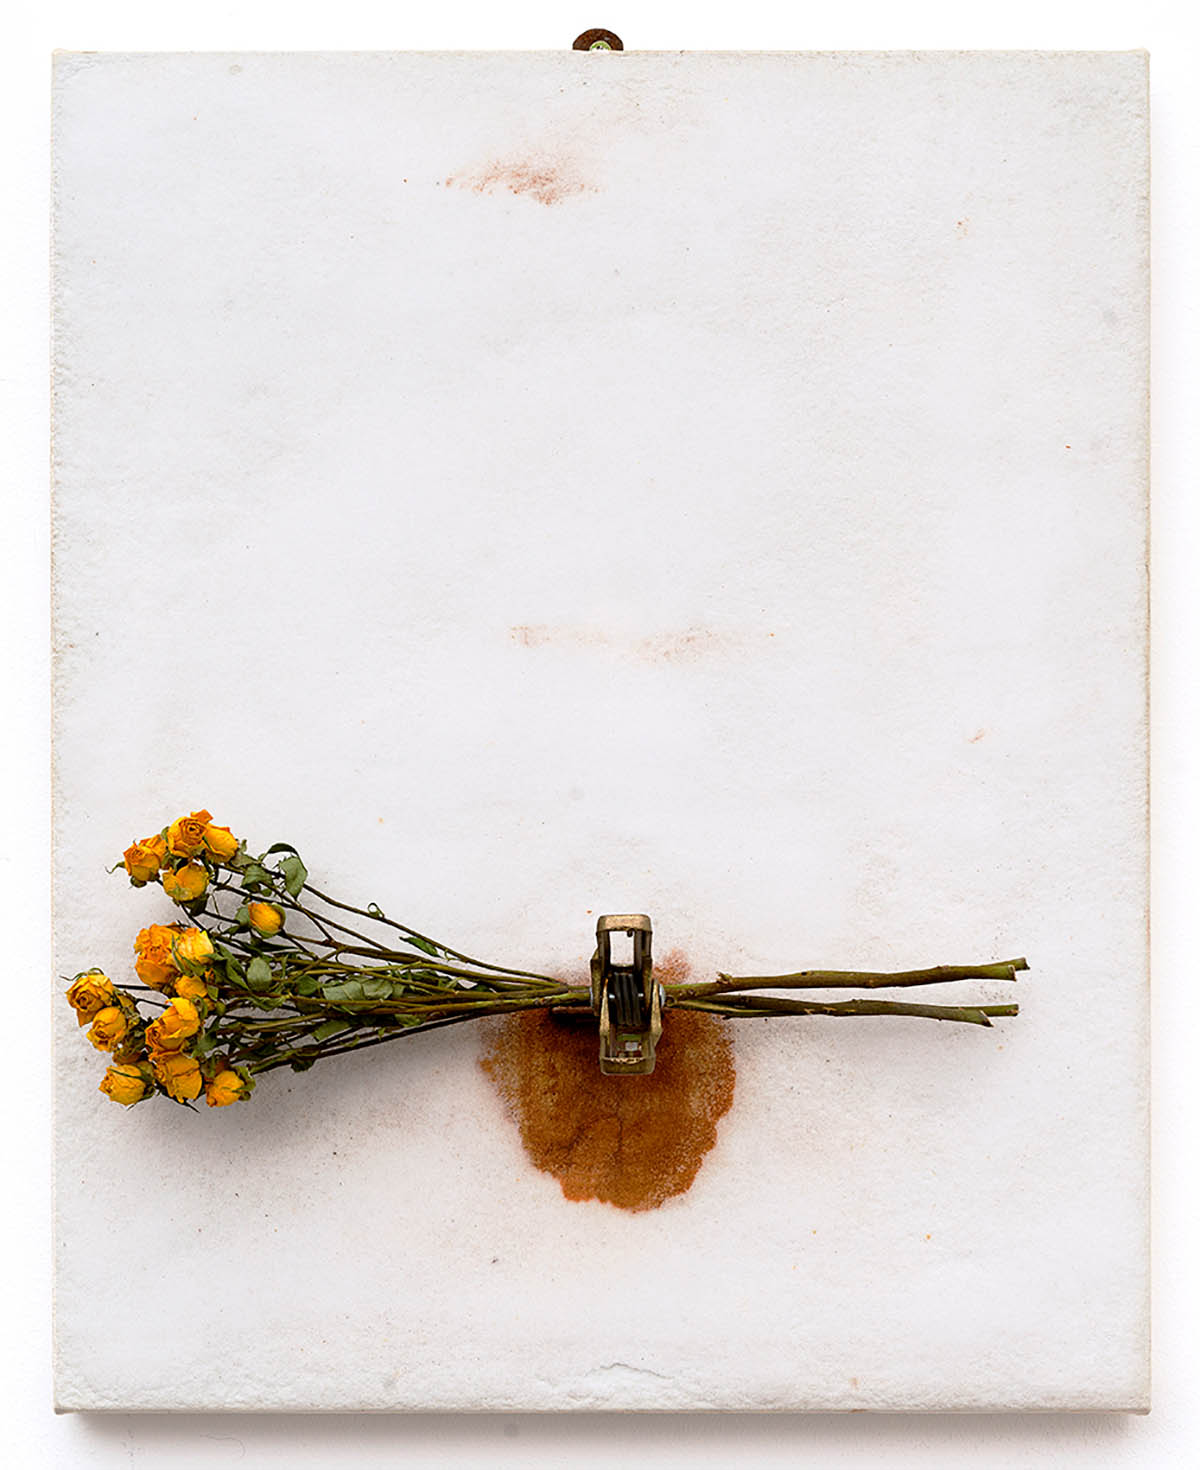 Pier Paolo CALZOLARI, Studio, 1986. Salt, iron, bouquet of roses on paper applied on wood, 51 x 41 x 11 cm. Photo by Daniele de Lonti, Courtesy of Repetto Gallery, London. Section: Established Masters